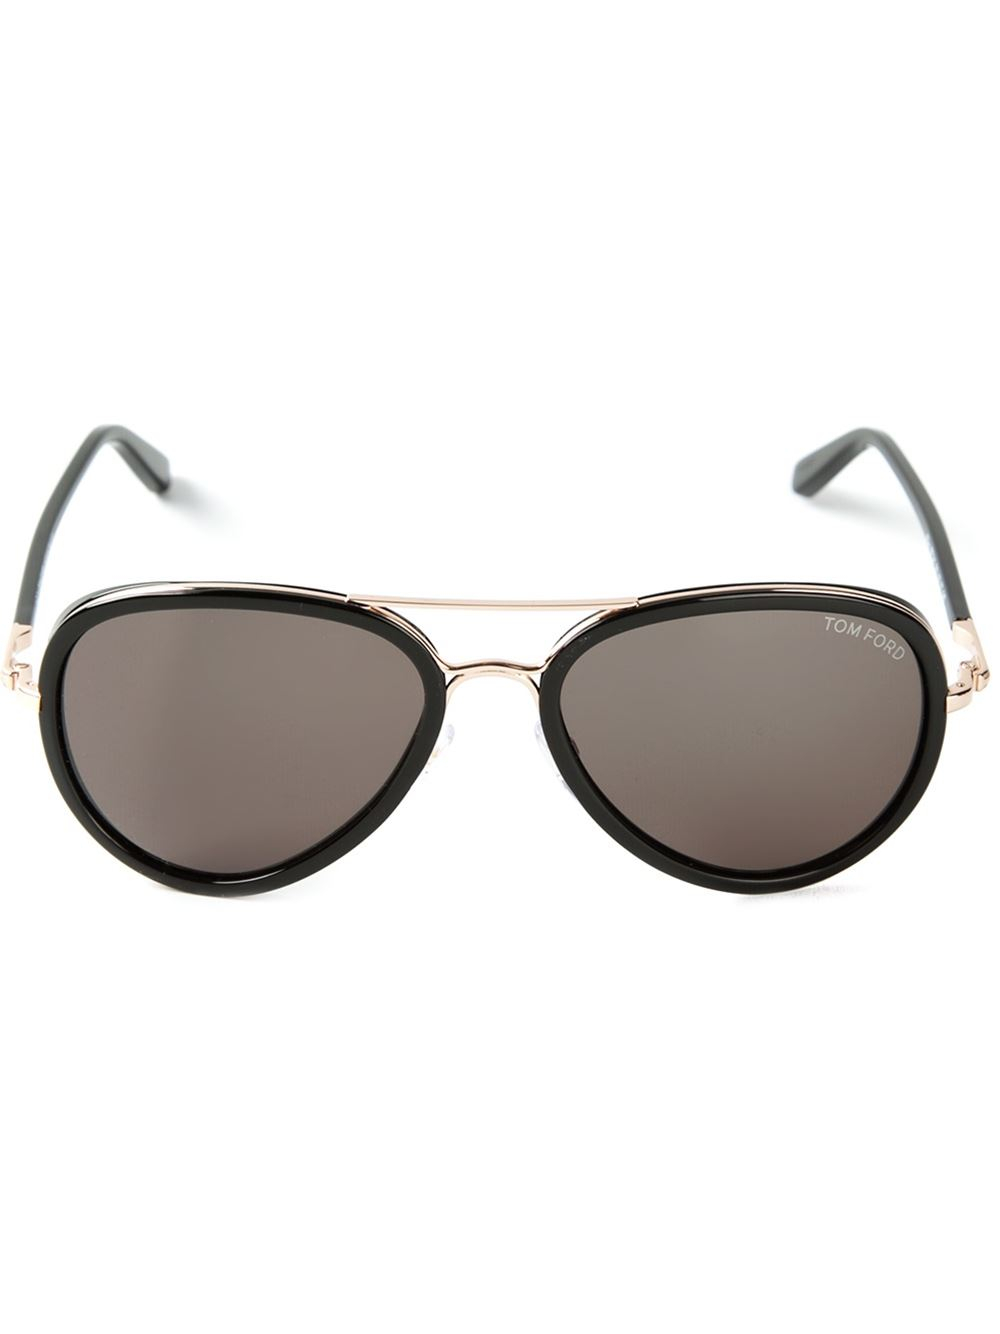 39f123d5cd89a Lyst - Tom Ford Cyrille Sunglasses in Black for Men